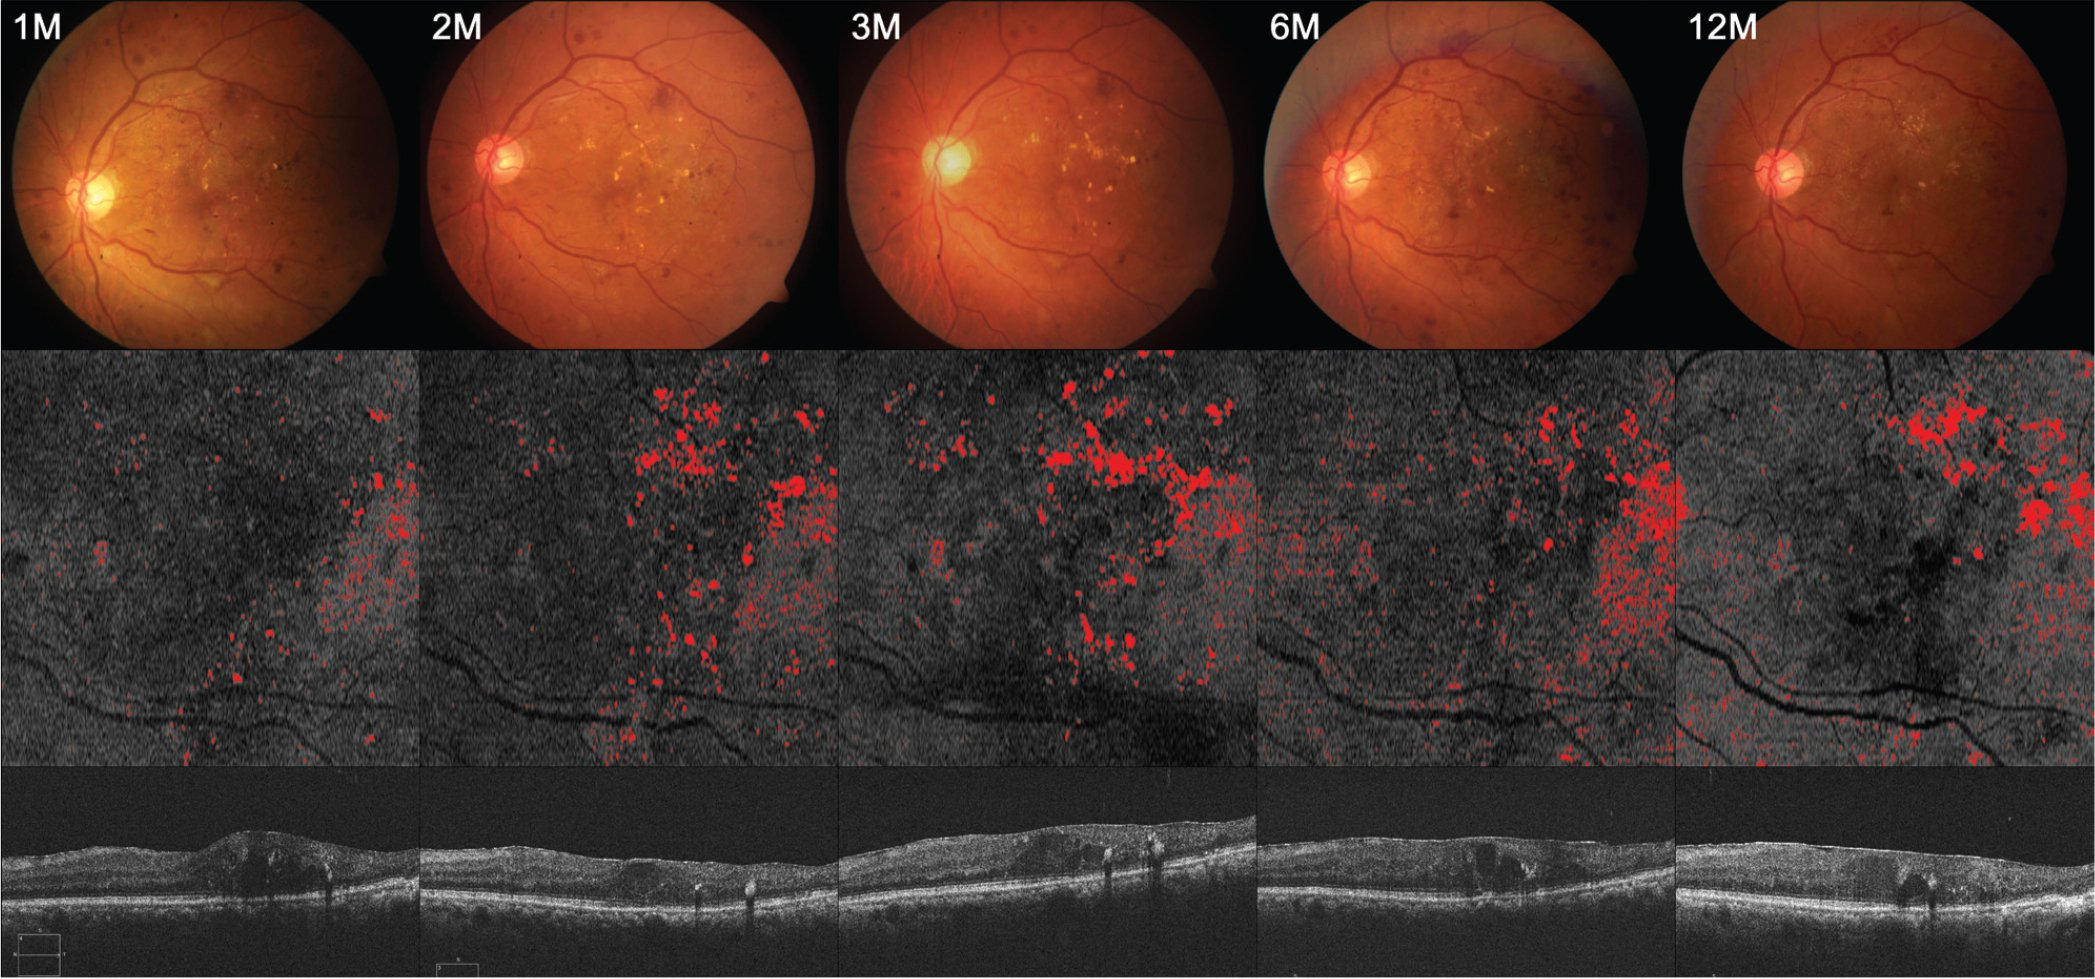 Serial changes in en face outer nuclear layer (ONL) slab hard exudates (HEs) after intravitreal ranibizumab treatment: a 69-year-old male patient with diffuse retinal thickening. Color fundus images (top), en face ONL slab images indicated with HEs area in red (middle), and cross-sectional images of central subfield corresponding to the en face image (bottom). The area fraction ONL HEs in en face ONL slab images are 1.68% at month 1, 2.80% at month 2, 3.18% at month 3, 3.42% at month 6, and 3.43% at month 12.